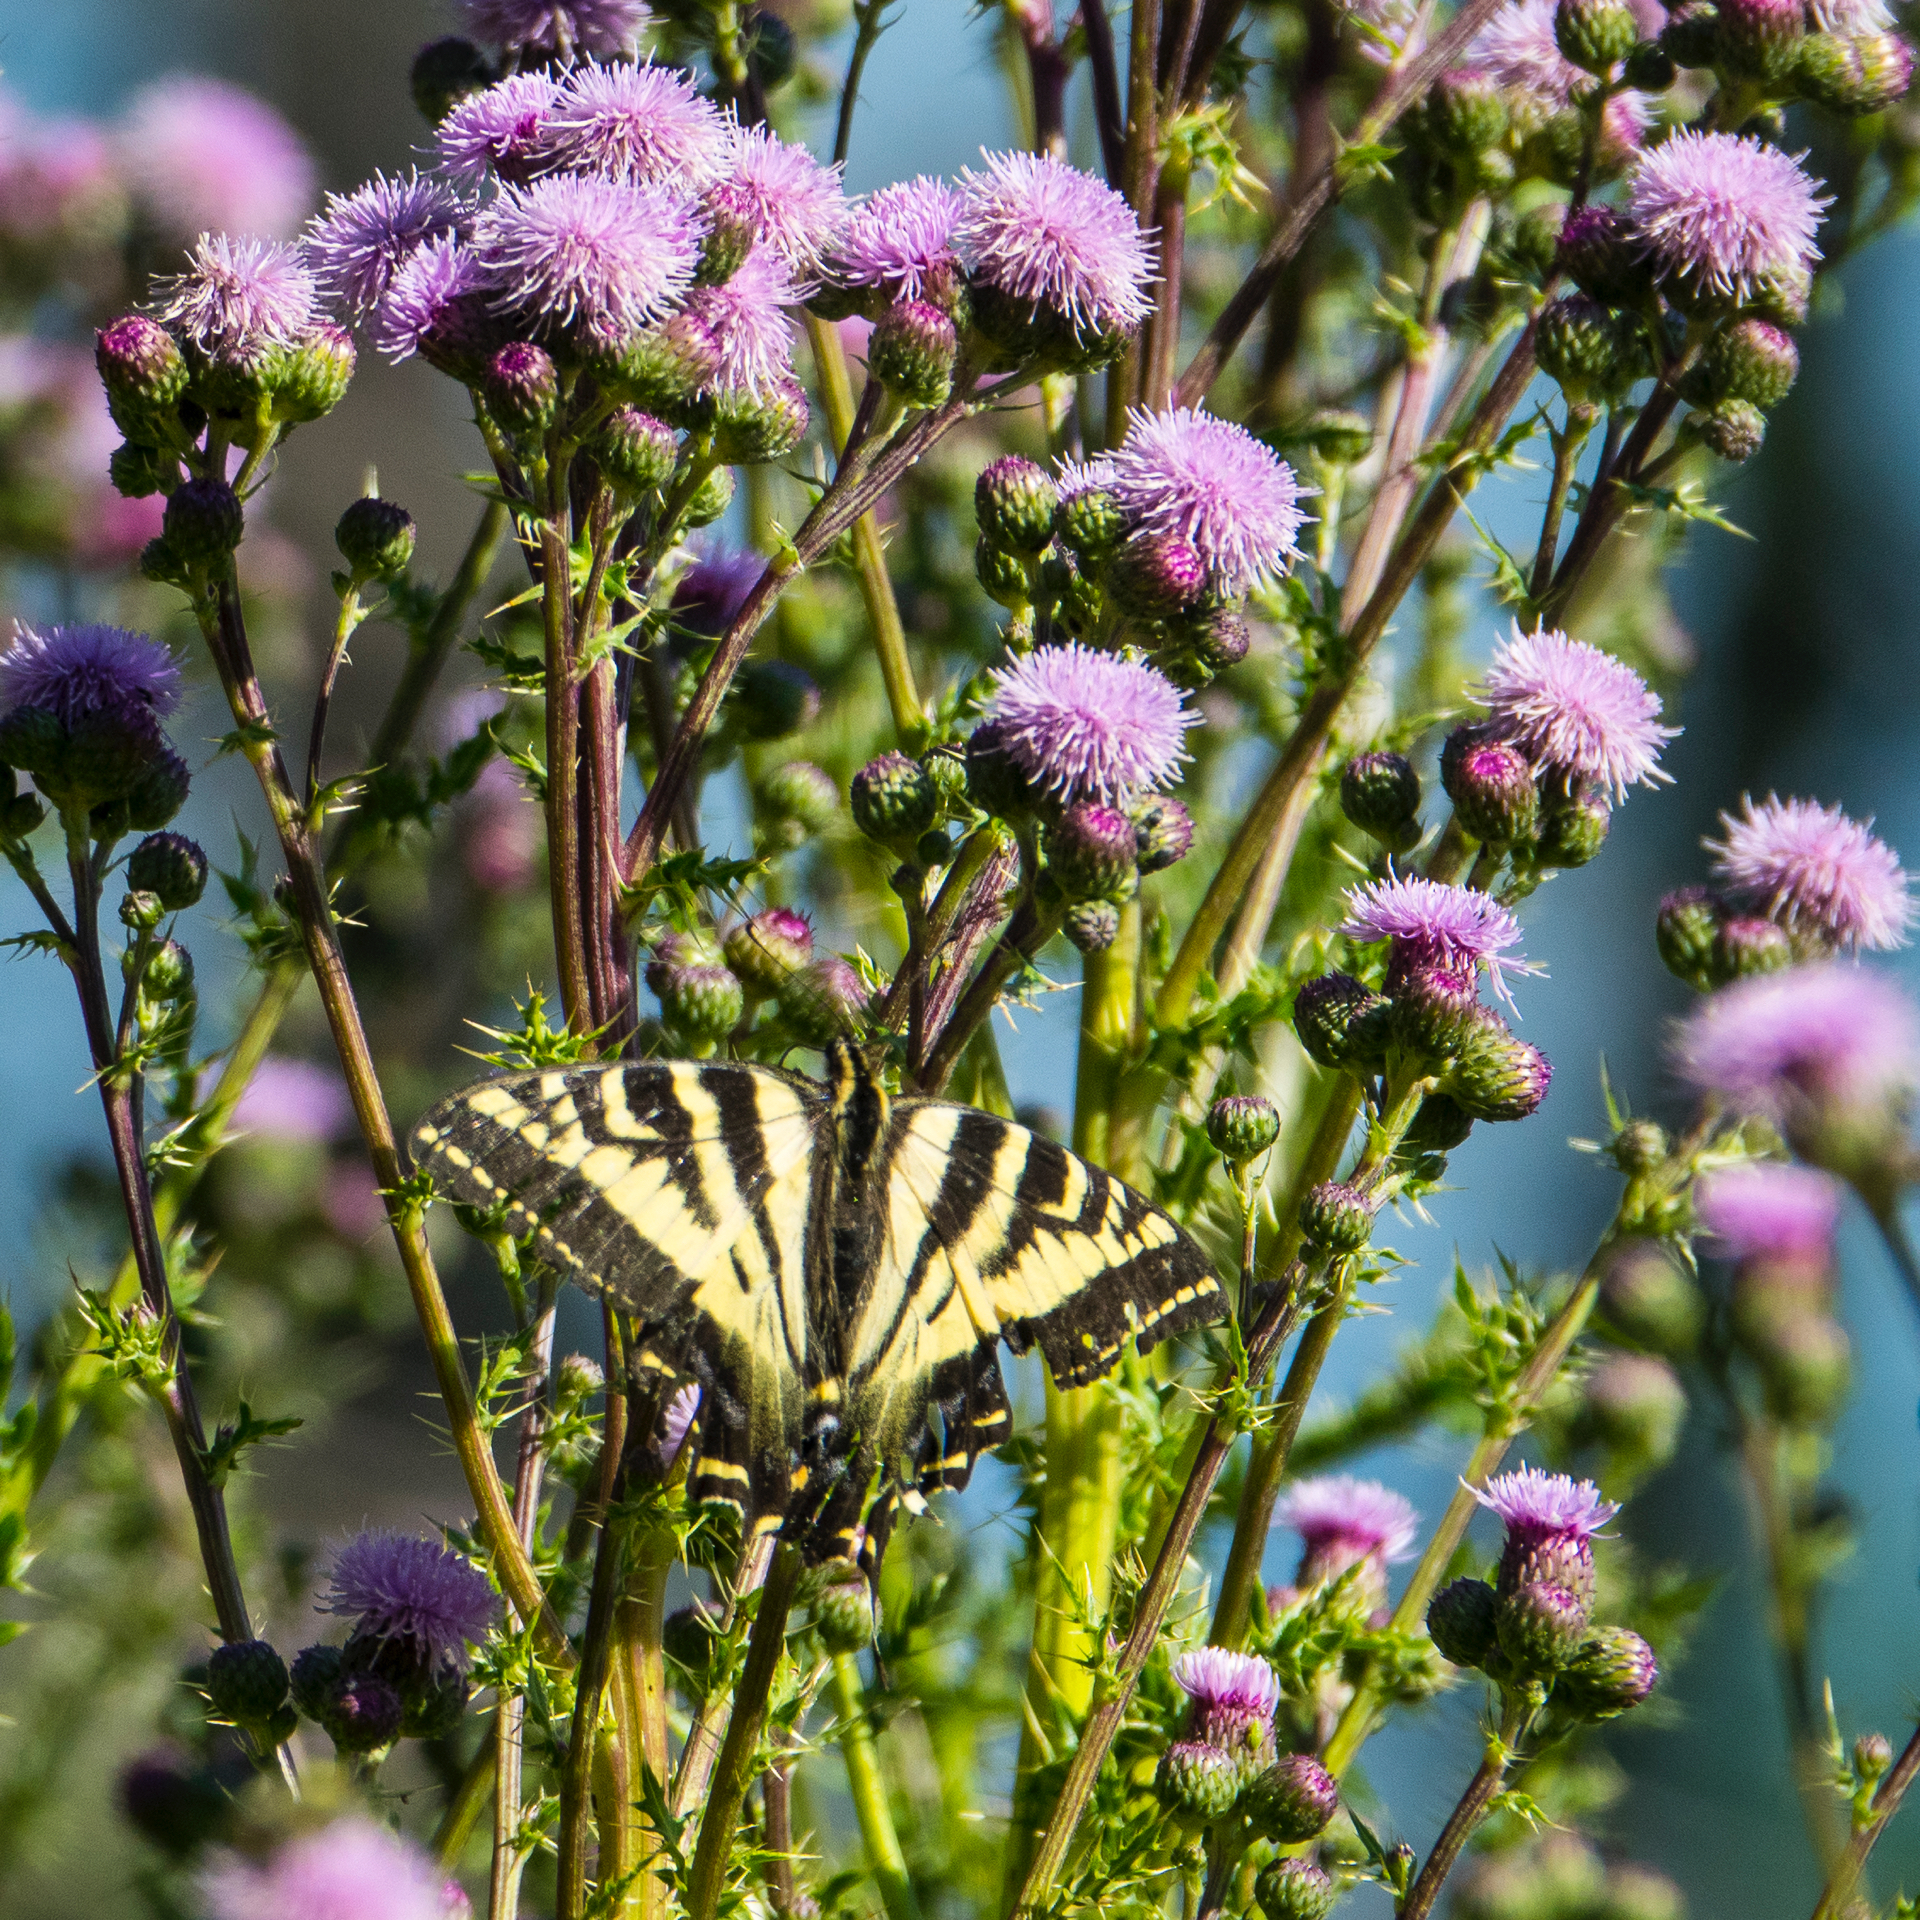 While the thistles are an infestation that prevents us from using much of the property, the bees, butterflies and birds seem to really like them.